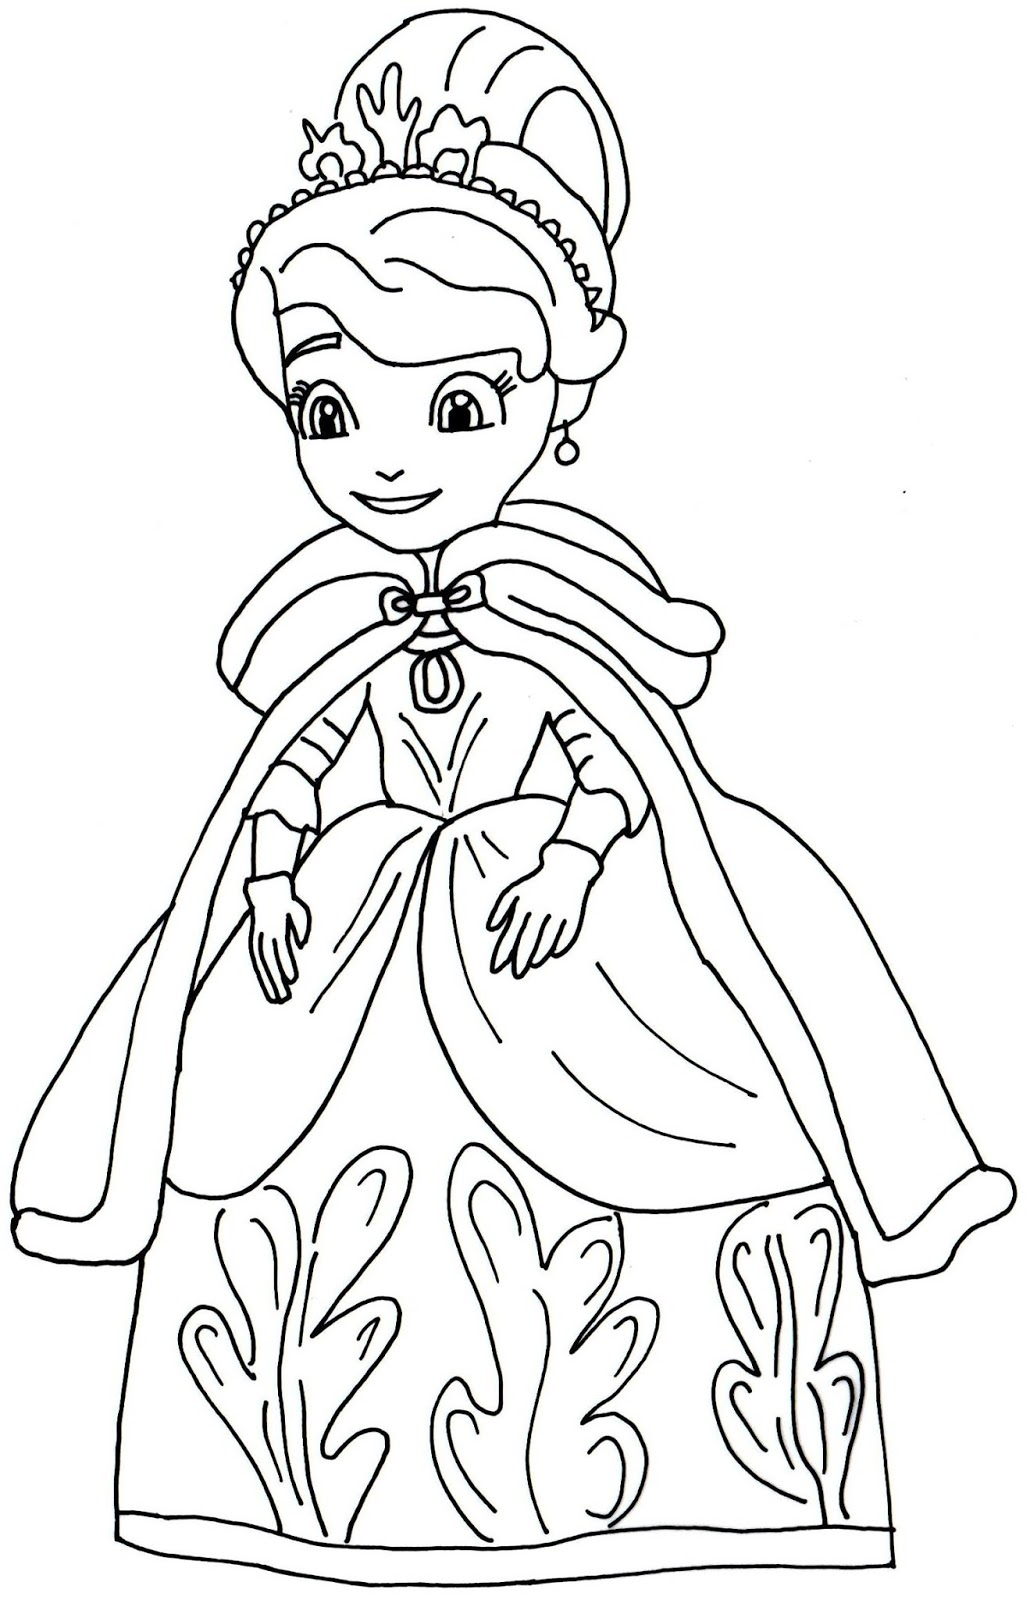 Princess sophia printable coloring pages - Winters Gift Sofia The First Coloring Page